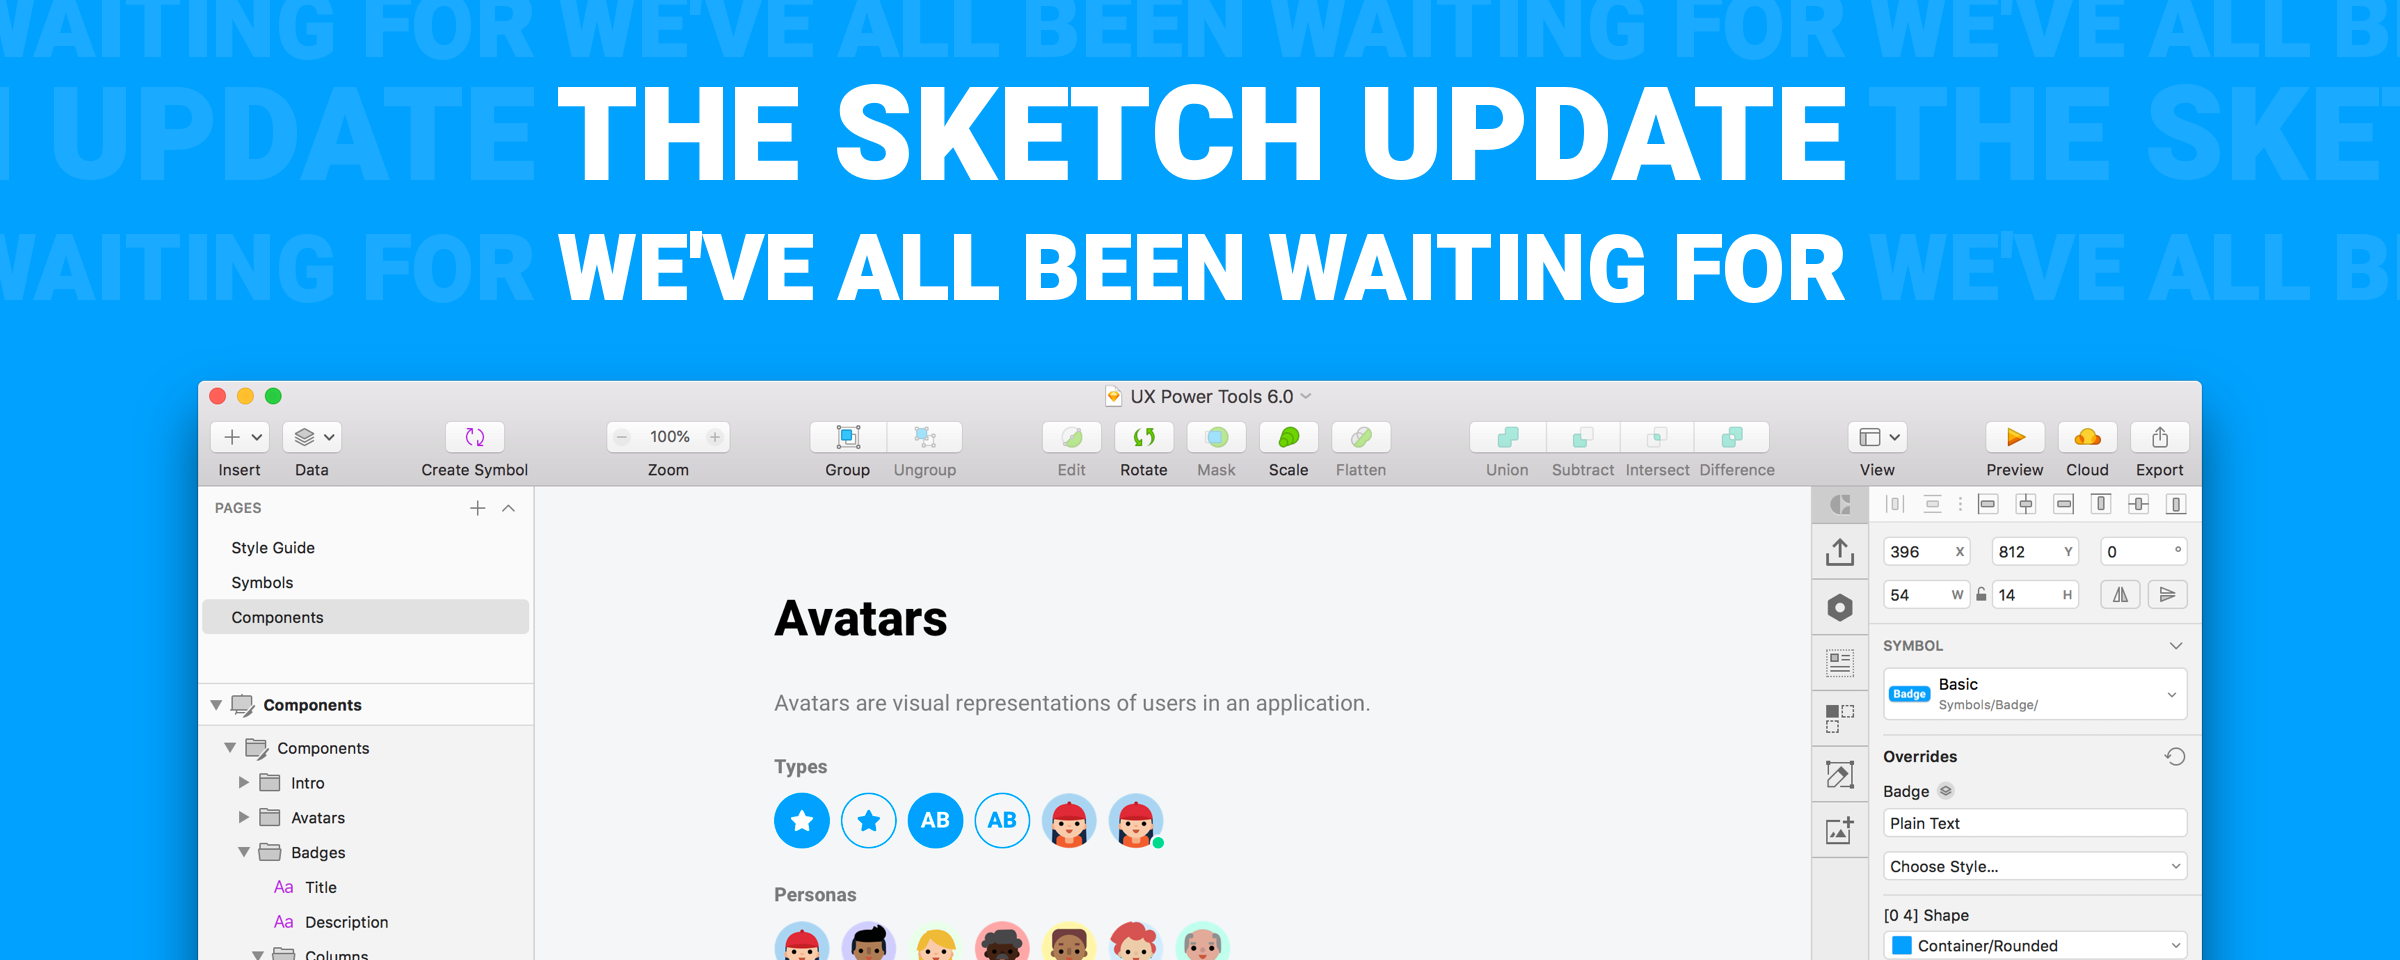 The Sketch Update We've All Been Waiting For, plus a BRAND